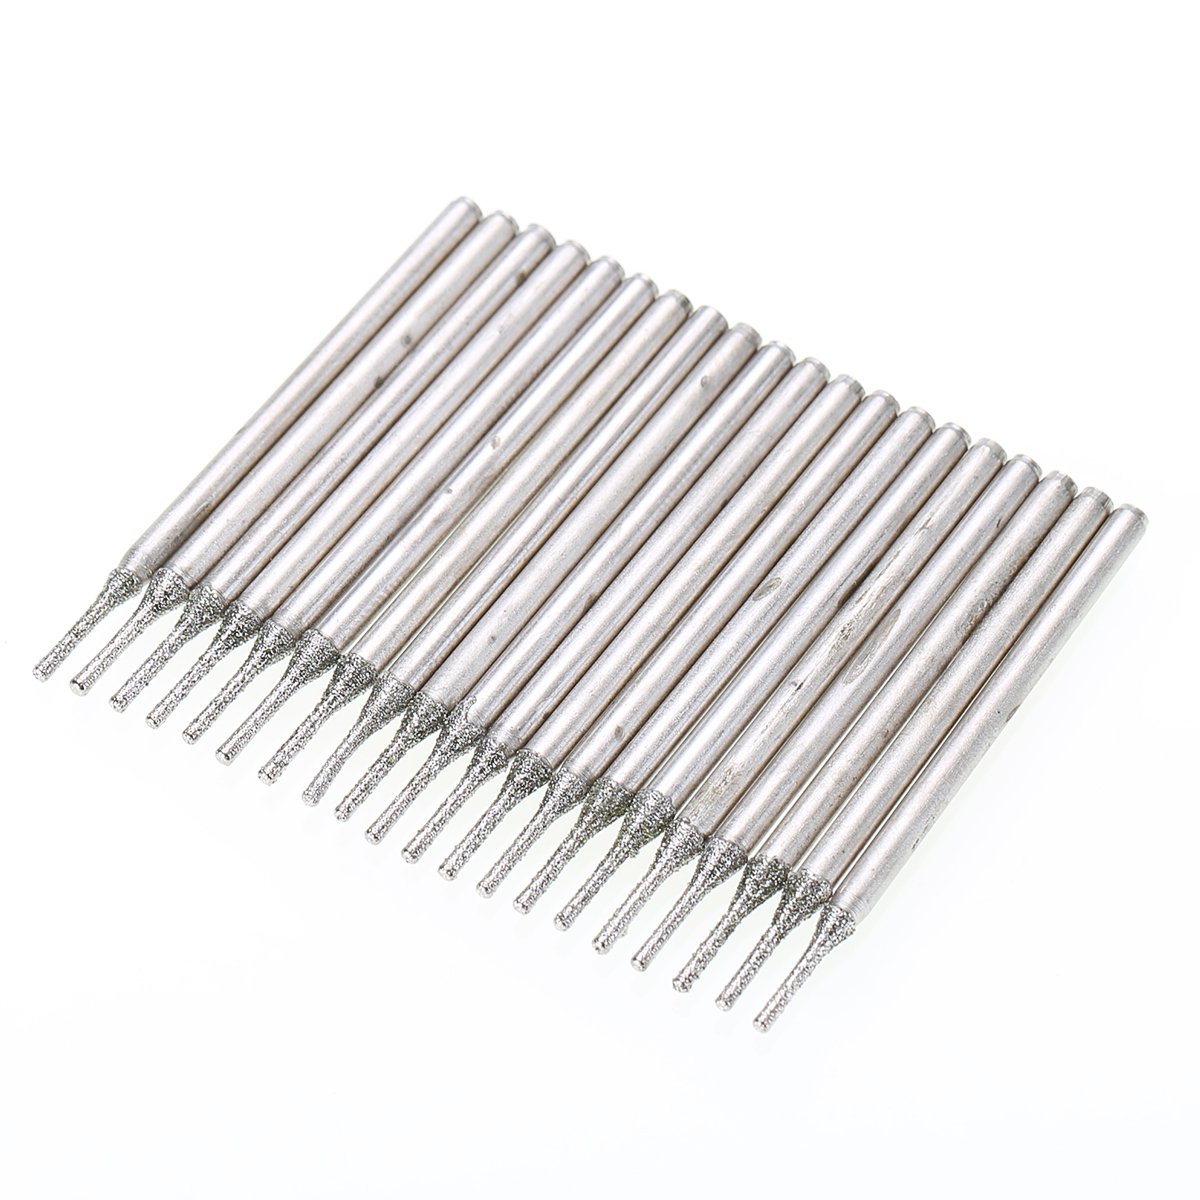 20PCS Metal Diamond Coated Core Drill Hole Cutter Solid Bits Needle Gems Glass Tile 1mm Hand Power Tool Accessories